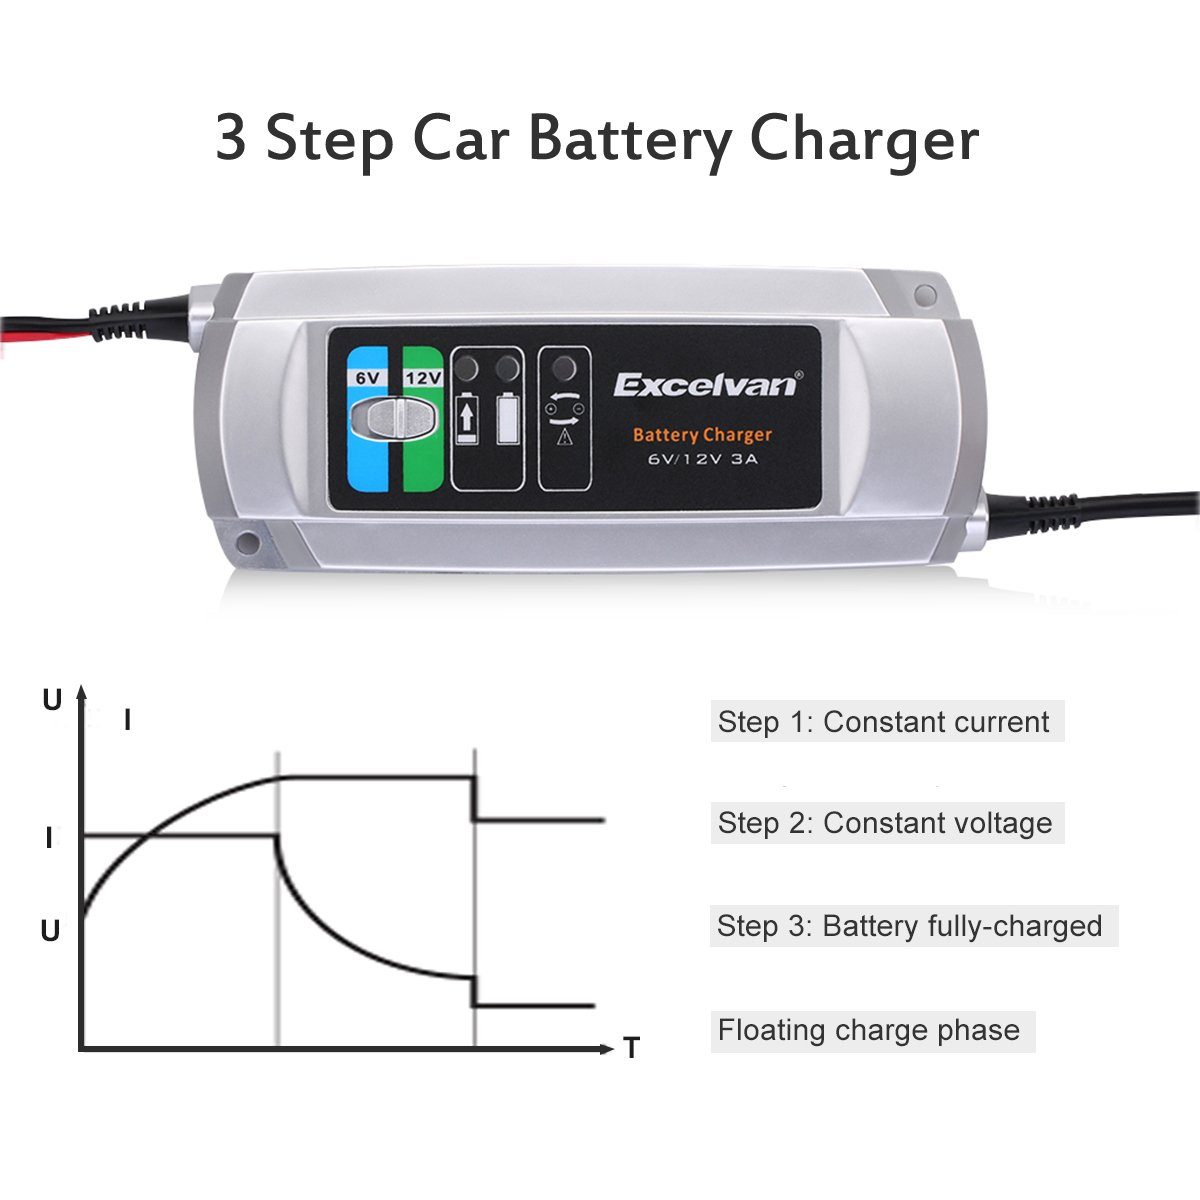 Excelvan Car Battery Charger Maintainer 6v 12v Trickle Rv Gel Cell Circuit Diagram Motorcycle Mower With High Safety Protection For Lead Acid Vehicle And